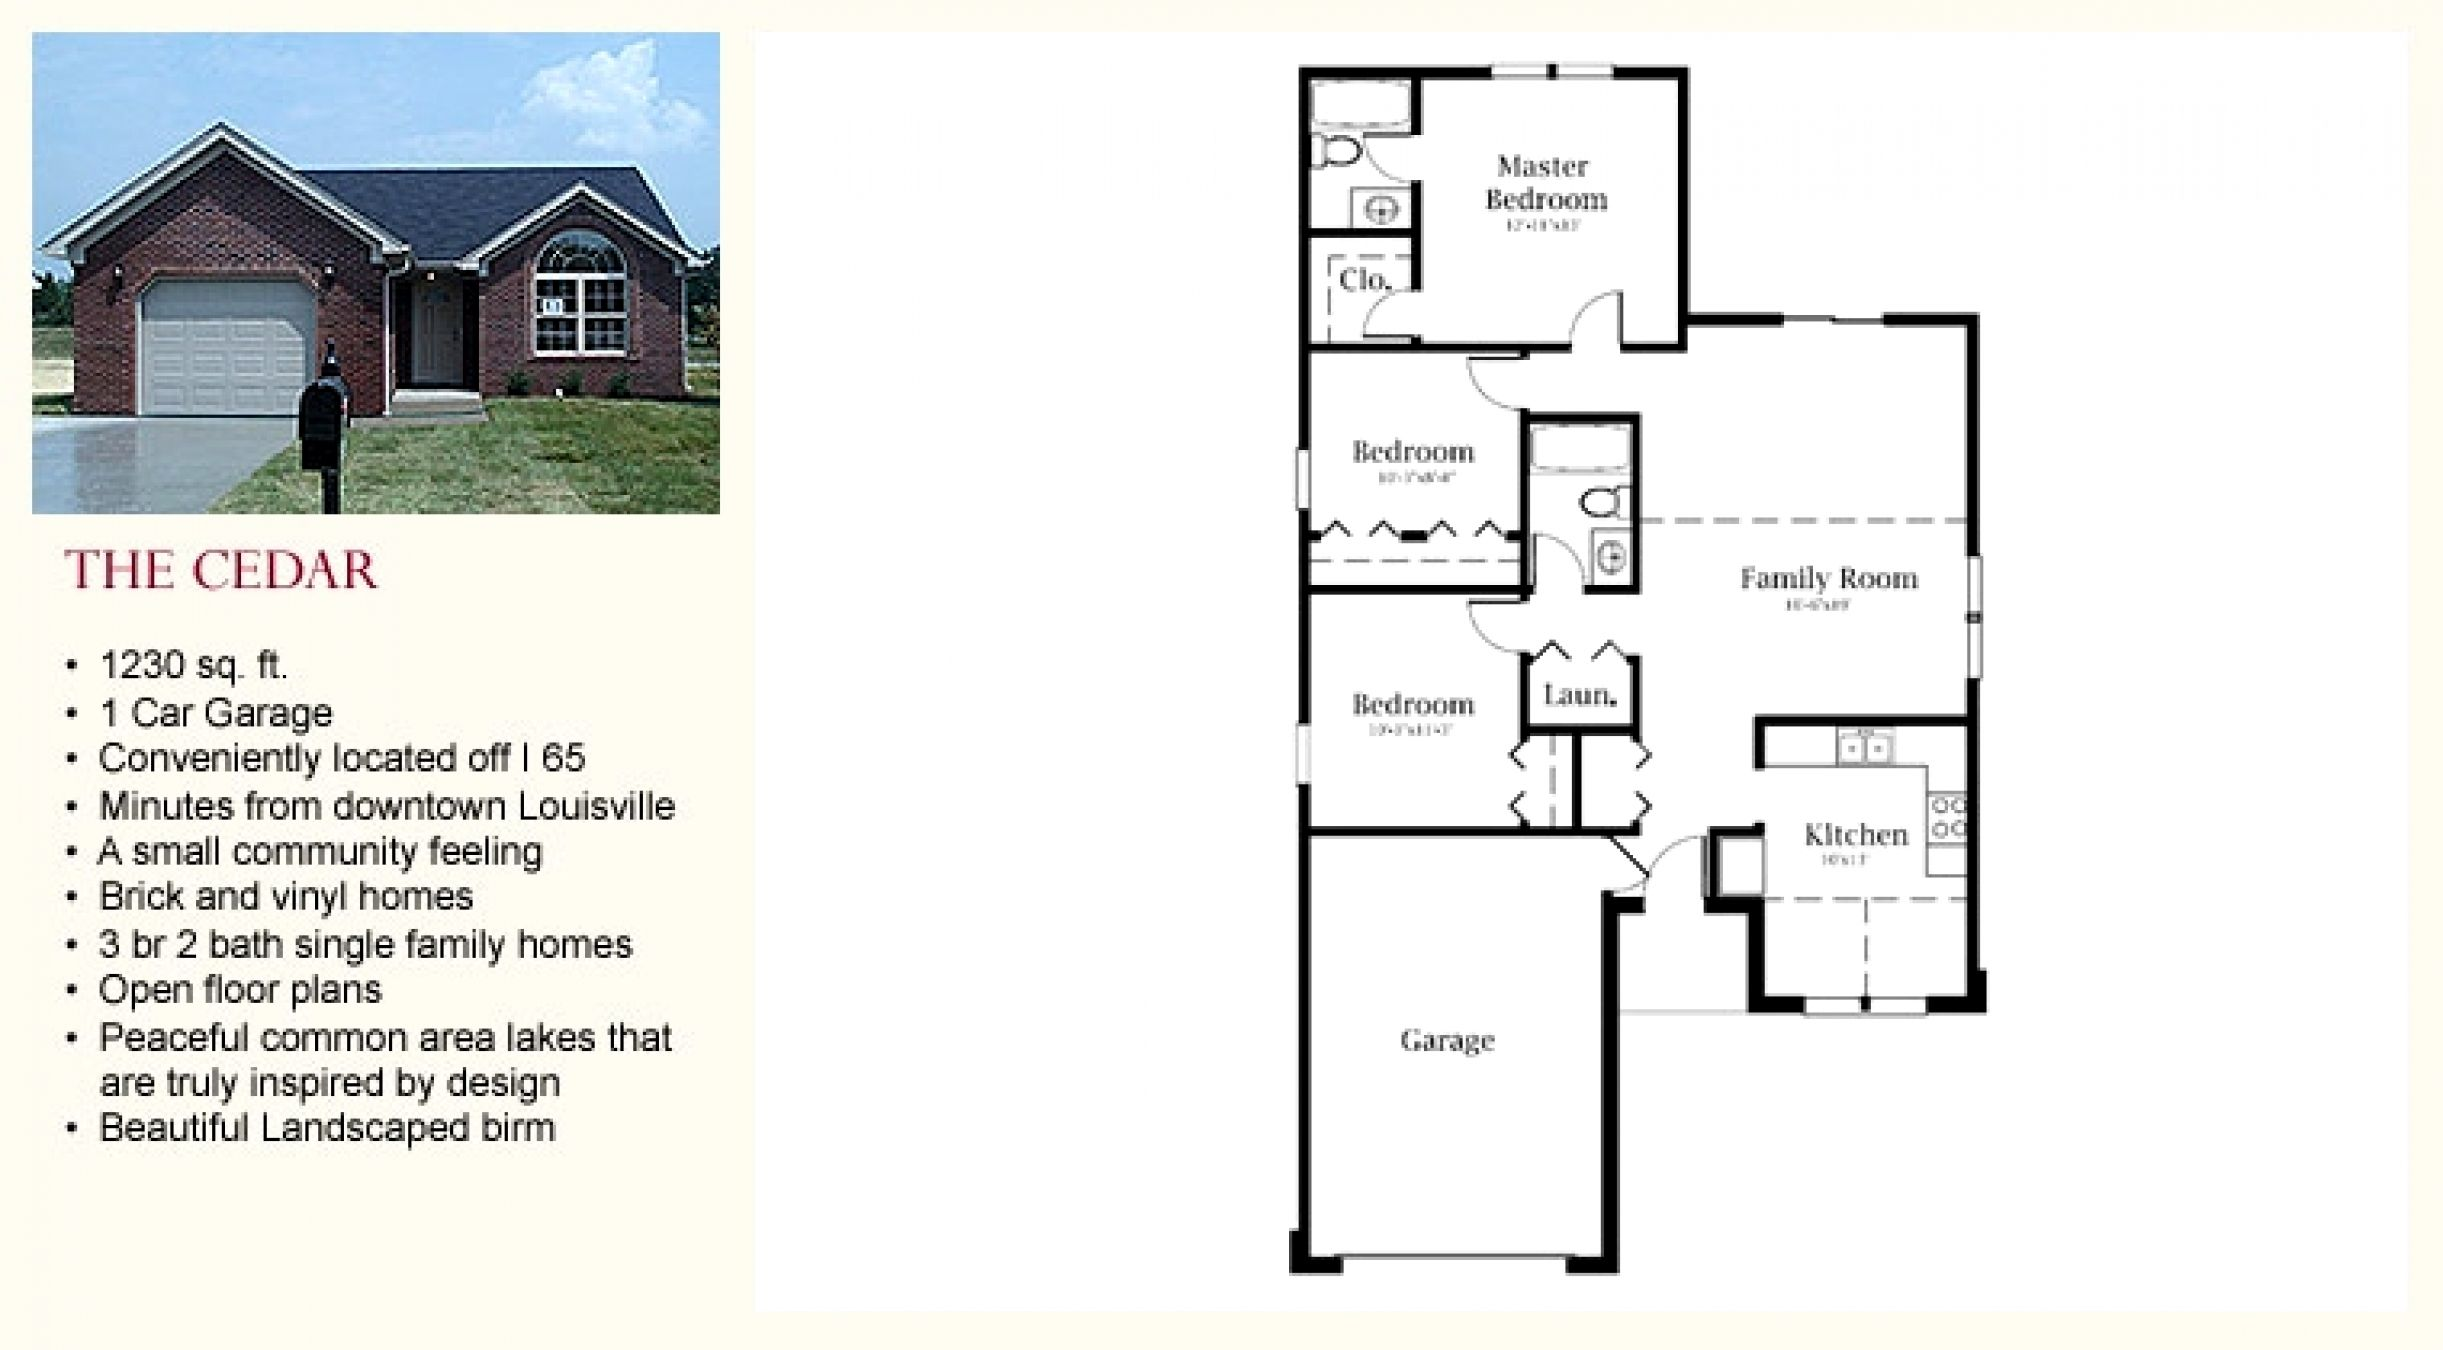 Small Family Home Plans House Plan 7 Family House Plans House Plans Floor Plan Design